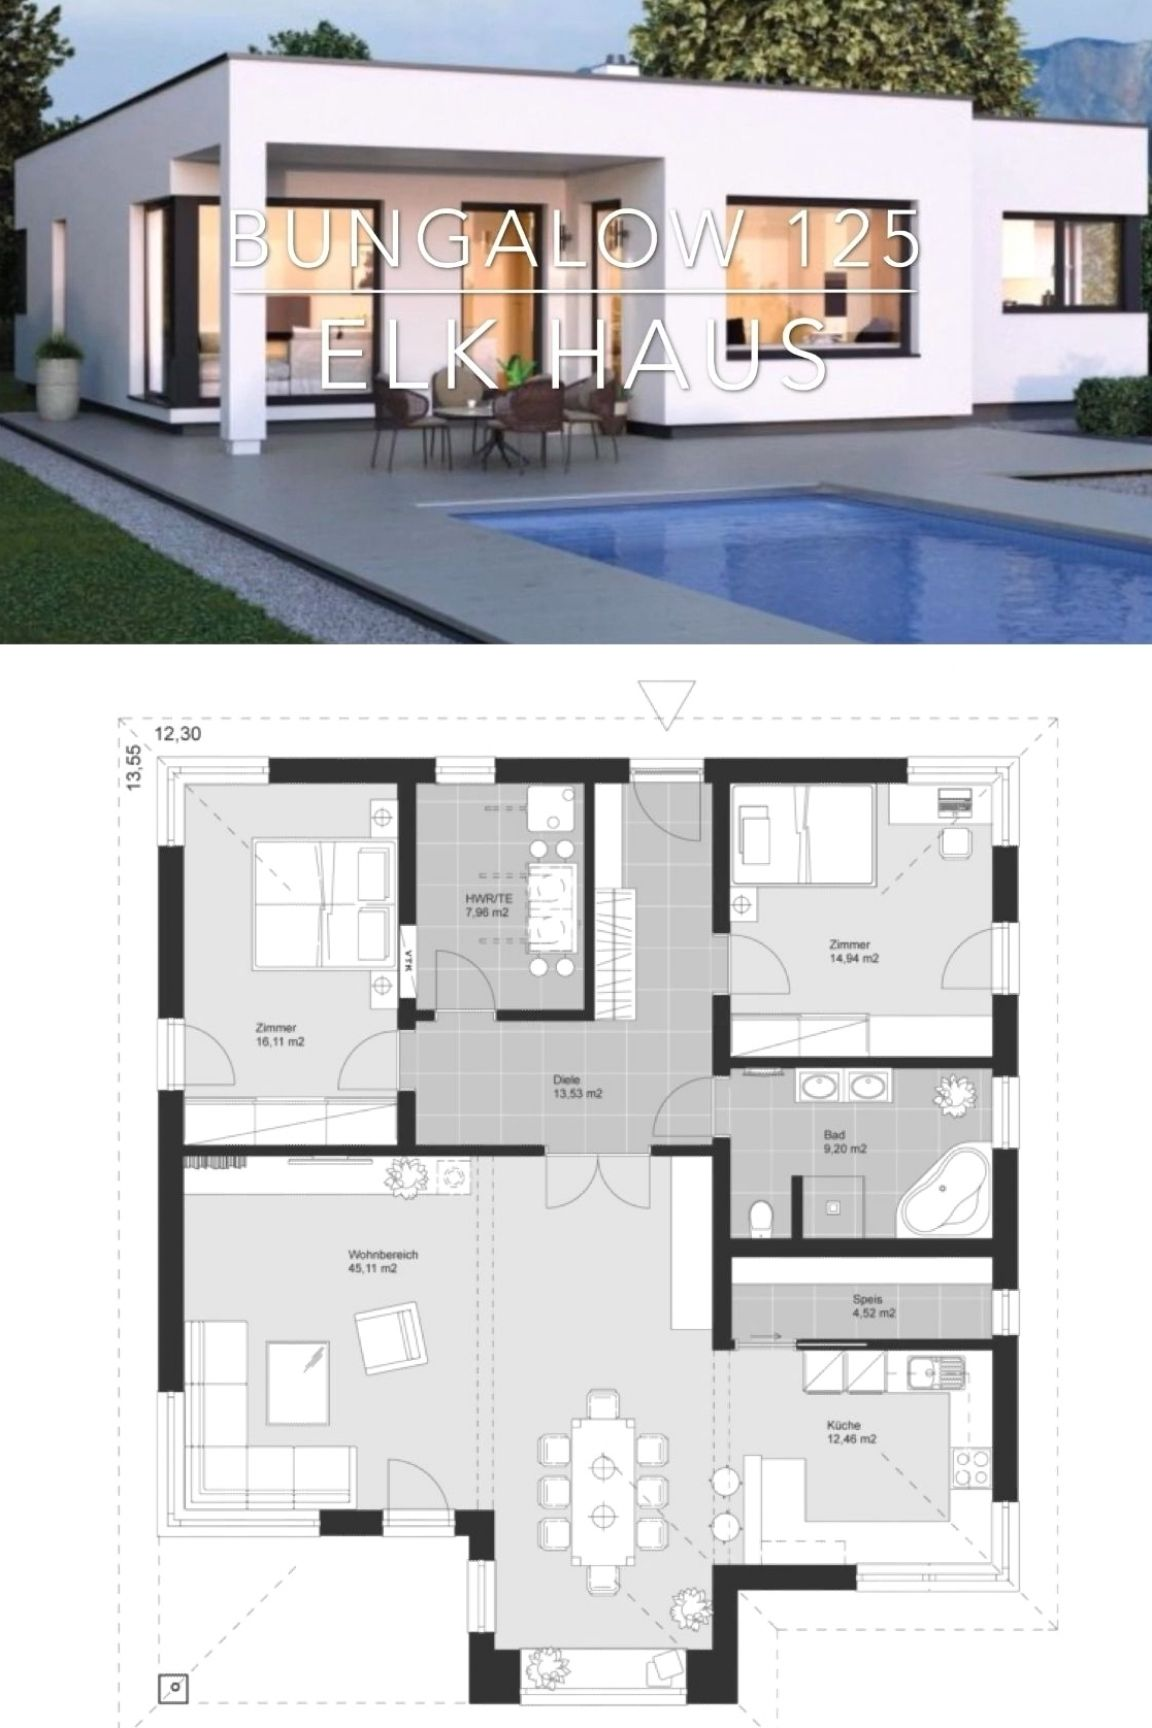 Modern One Story House Plan Architecture Interior Design Elk Bungalow 125 In 2020 Layout Architecture House Architecture Design Contemporary House Plans